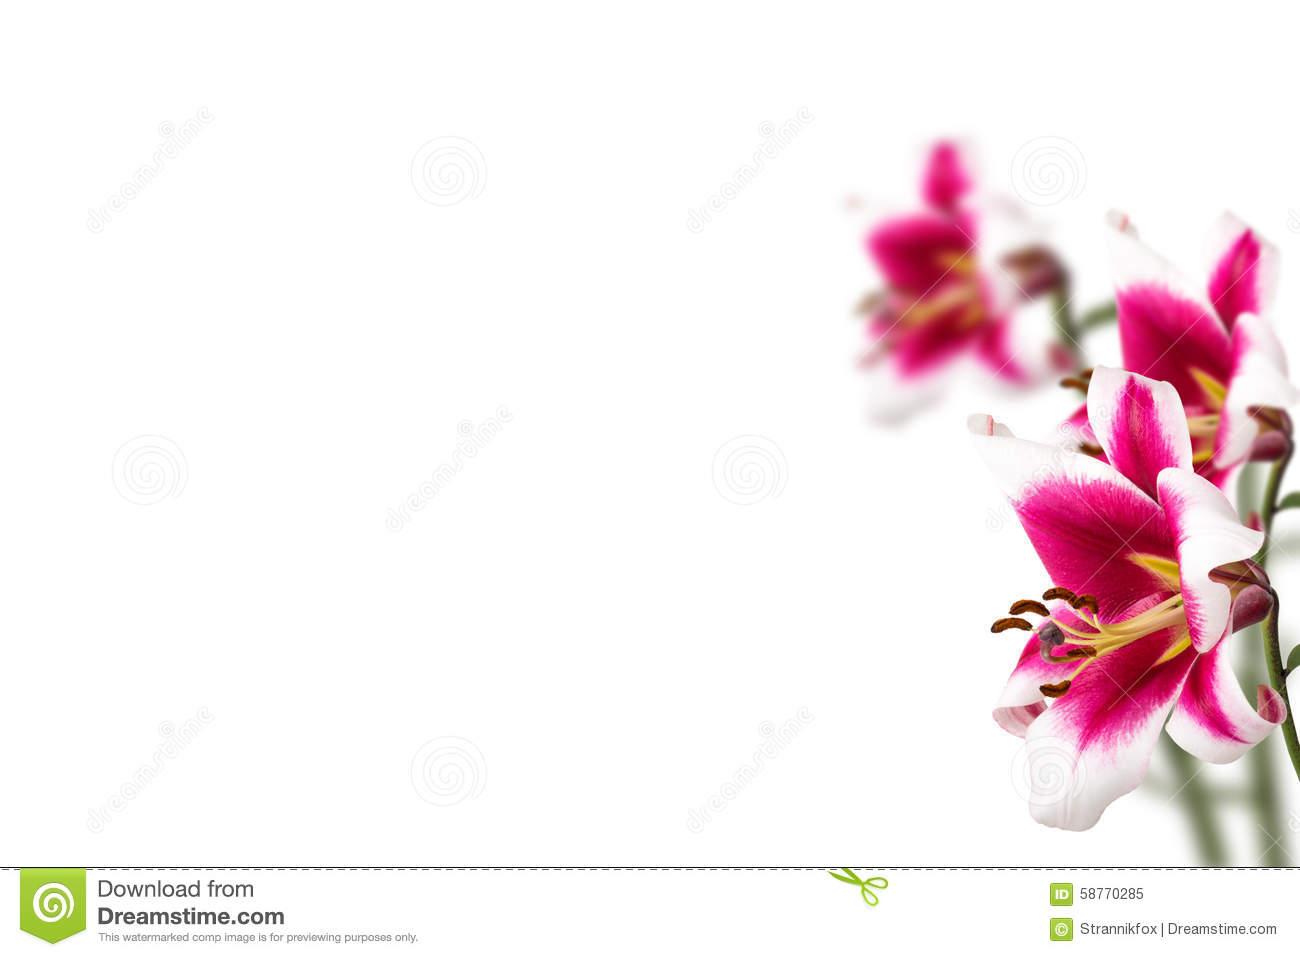 Lily flower border design isolated on white background stock photo background border design flower lily dhlflorist Images